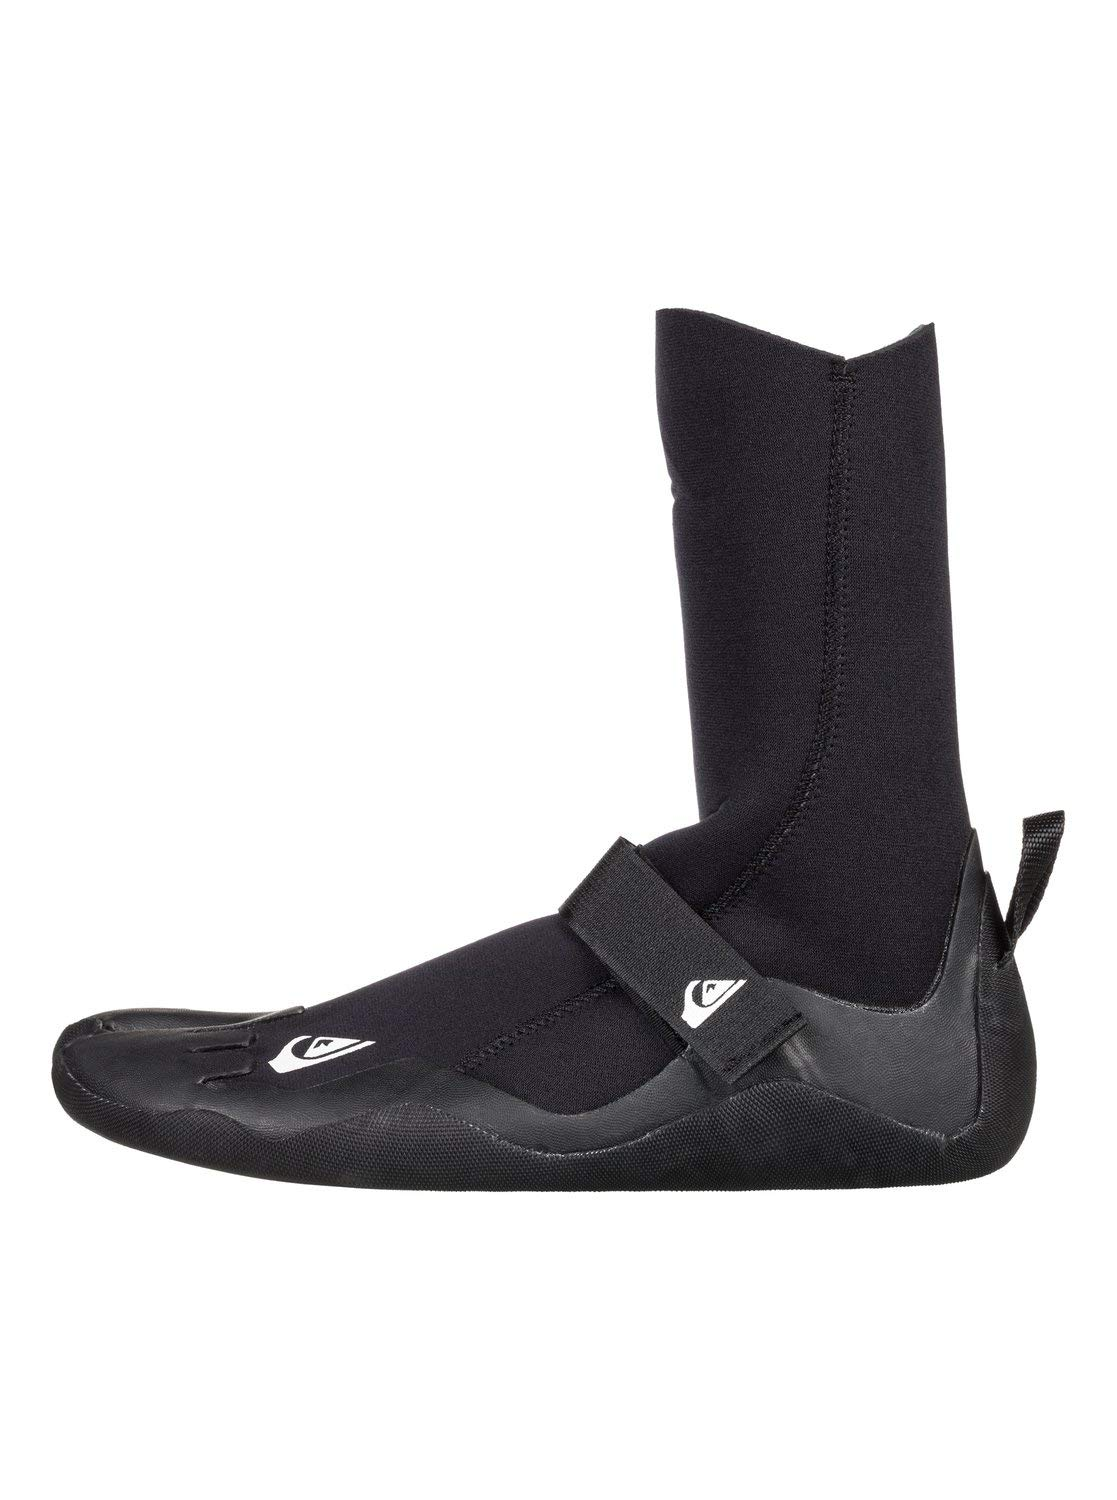 Quiksilver Mens 5Mm Syncro - Round Toe Surf Boots Round Toe Surf Boots Black 9 by Quiksilver